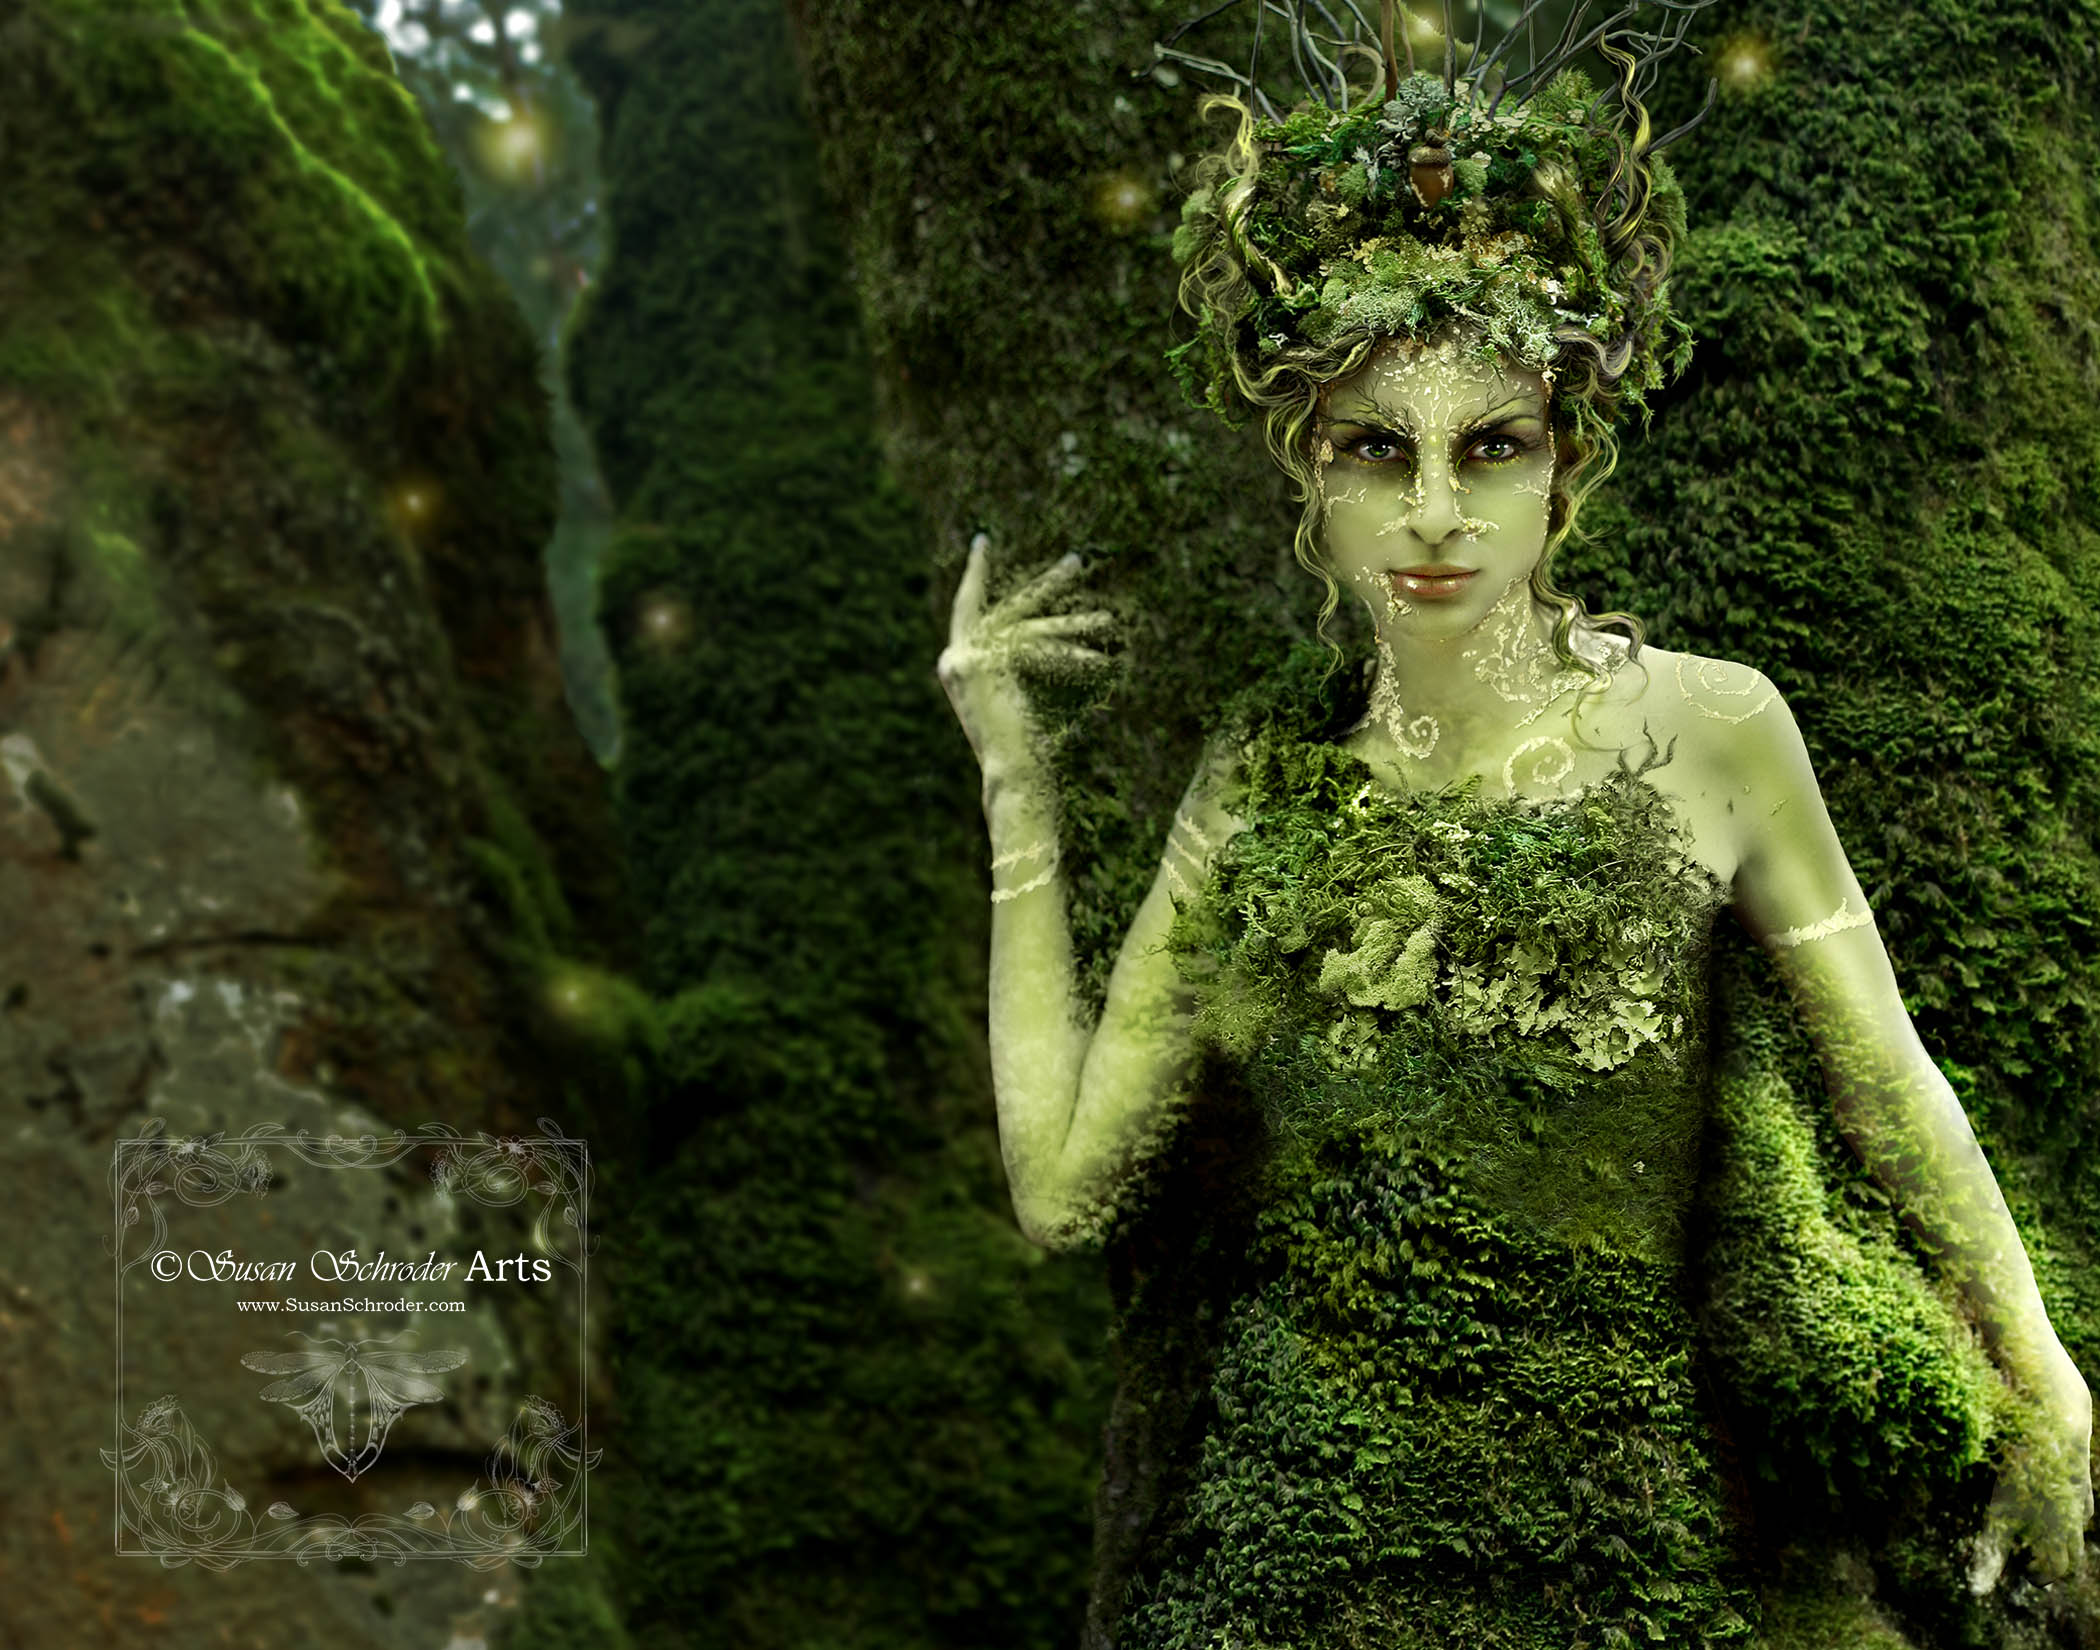 Hedgecreek Dryad is a perfect example of what I would call Photographic Art.          The difference between this and the Photographic Collage Art is that it done on location with models in costume and makeup. The final image has only some post editing fantasy effects done in Photoshop to complete the details. With collage art, I photograph most elements separately and then compile the final work on the computer.                            We shot this image on location at Hedgecreek Falls in Northern California. -